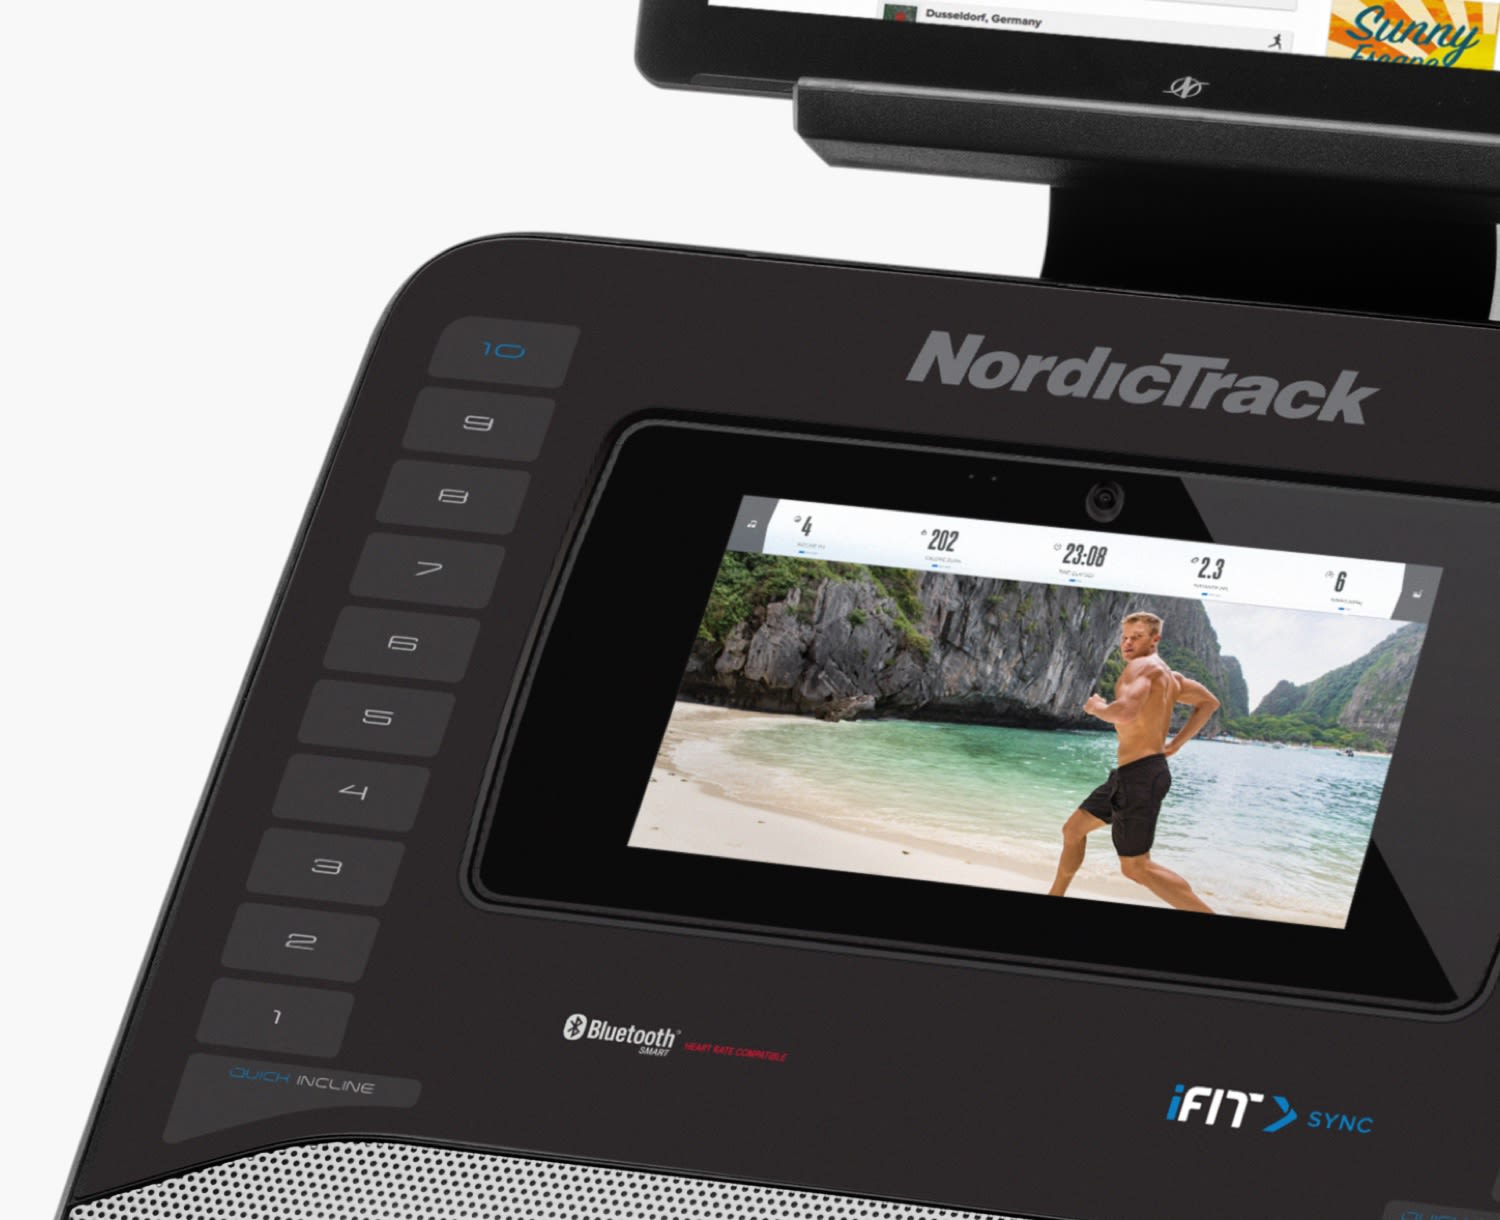 NordicTrack FreeStride Trainer FS7i Display With iFit Coach and Google Maps